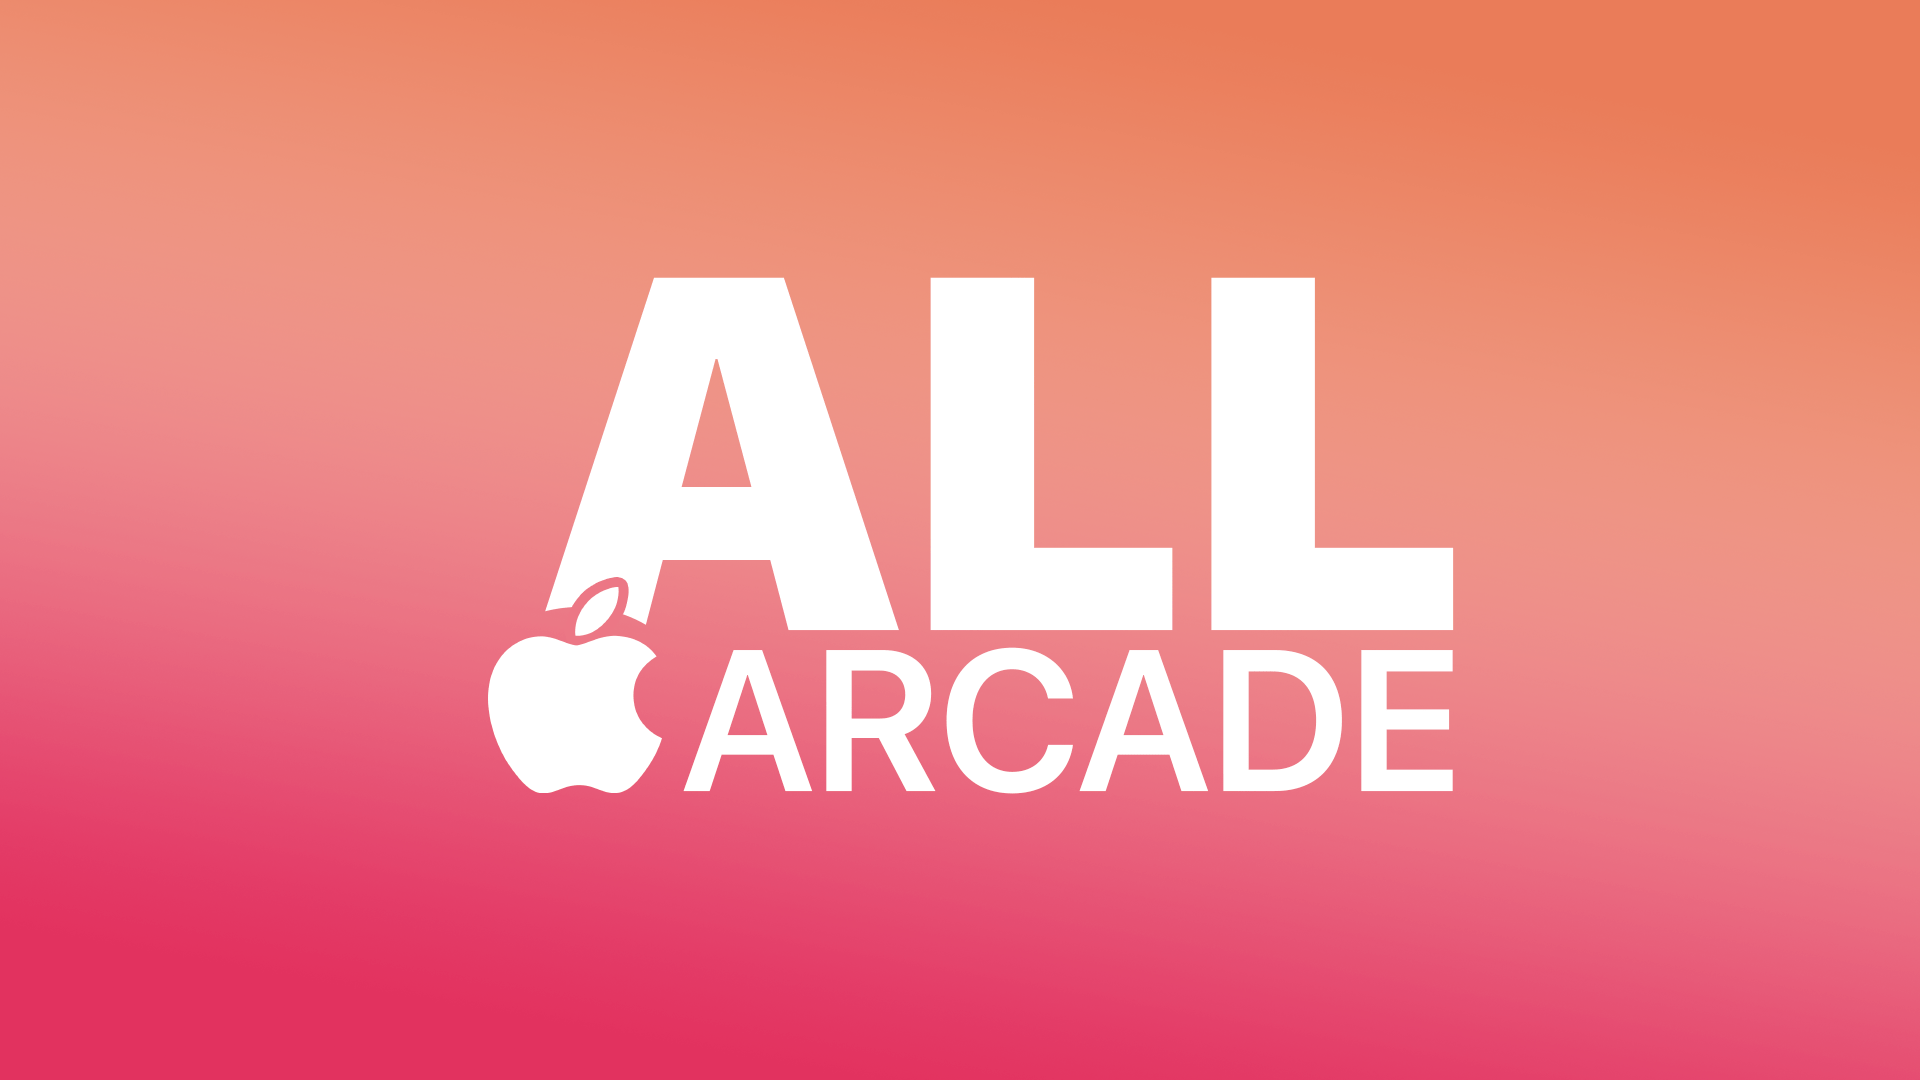 Apple Arcade has a new yearly subscription option - Polygon